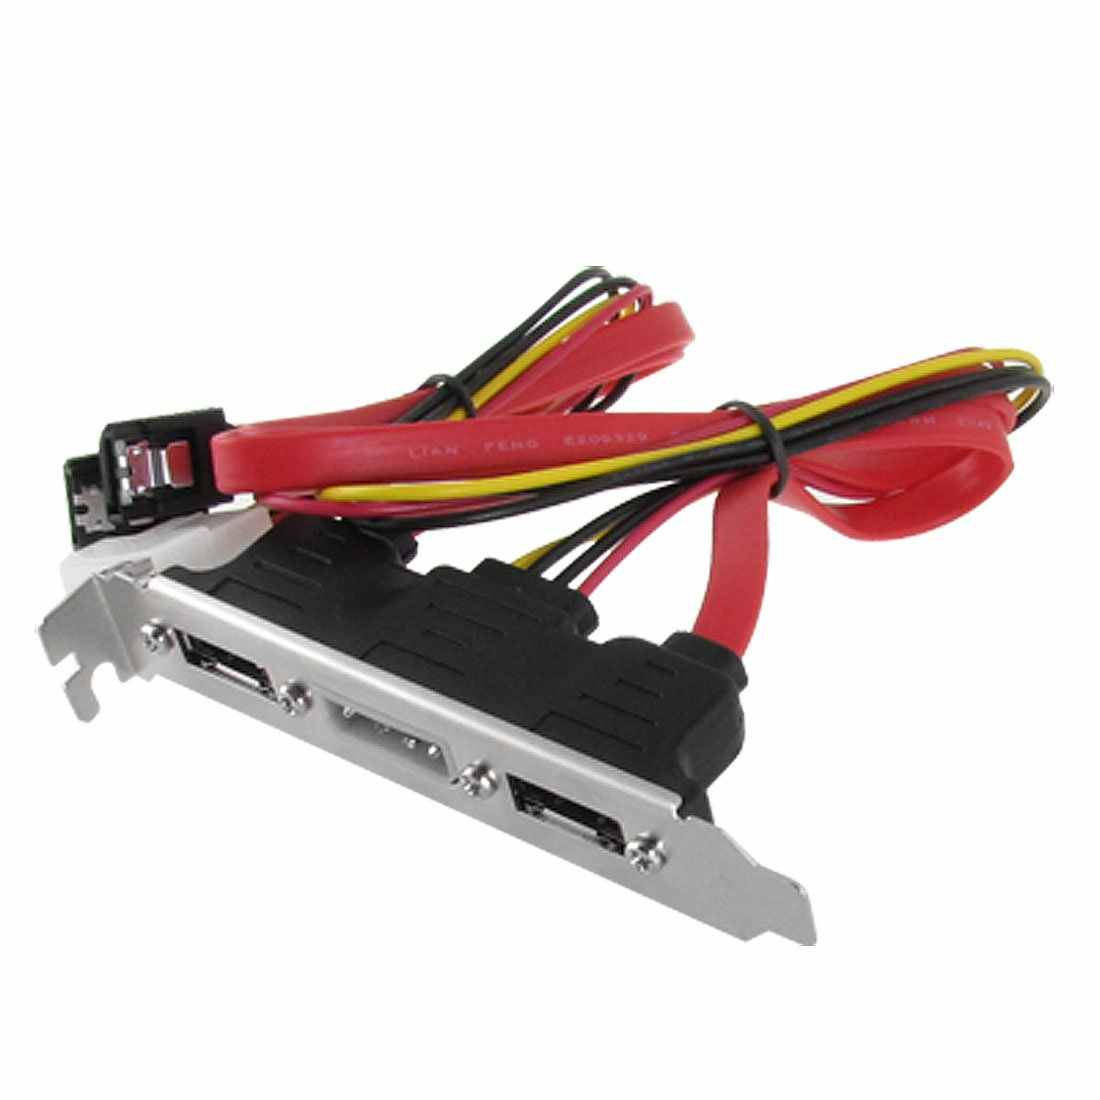 Baru 2-eSATA + 4 Pin Power Bracket Port Ke Perempuan Kabel SATA